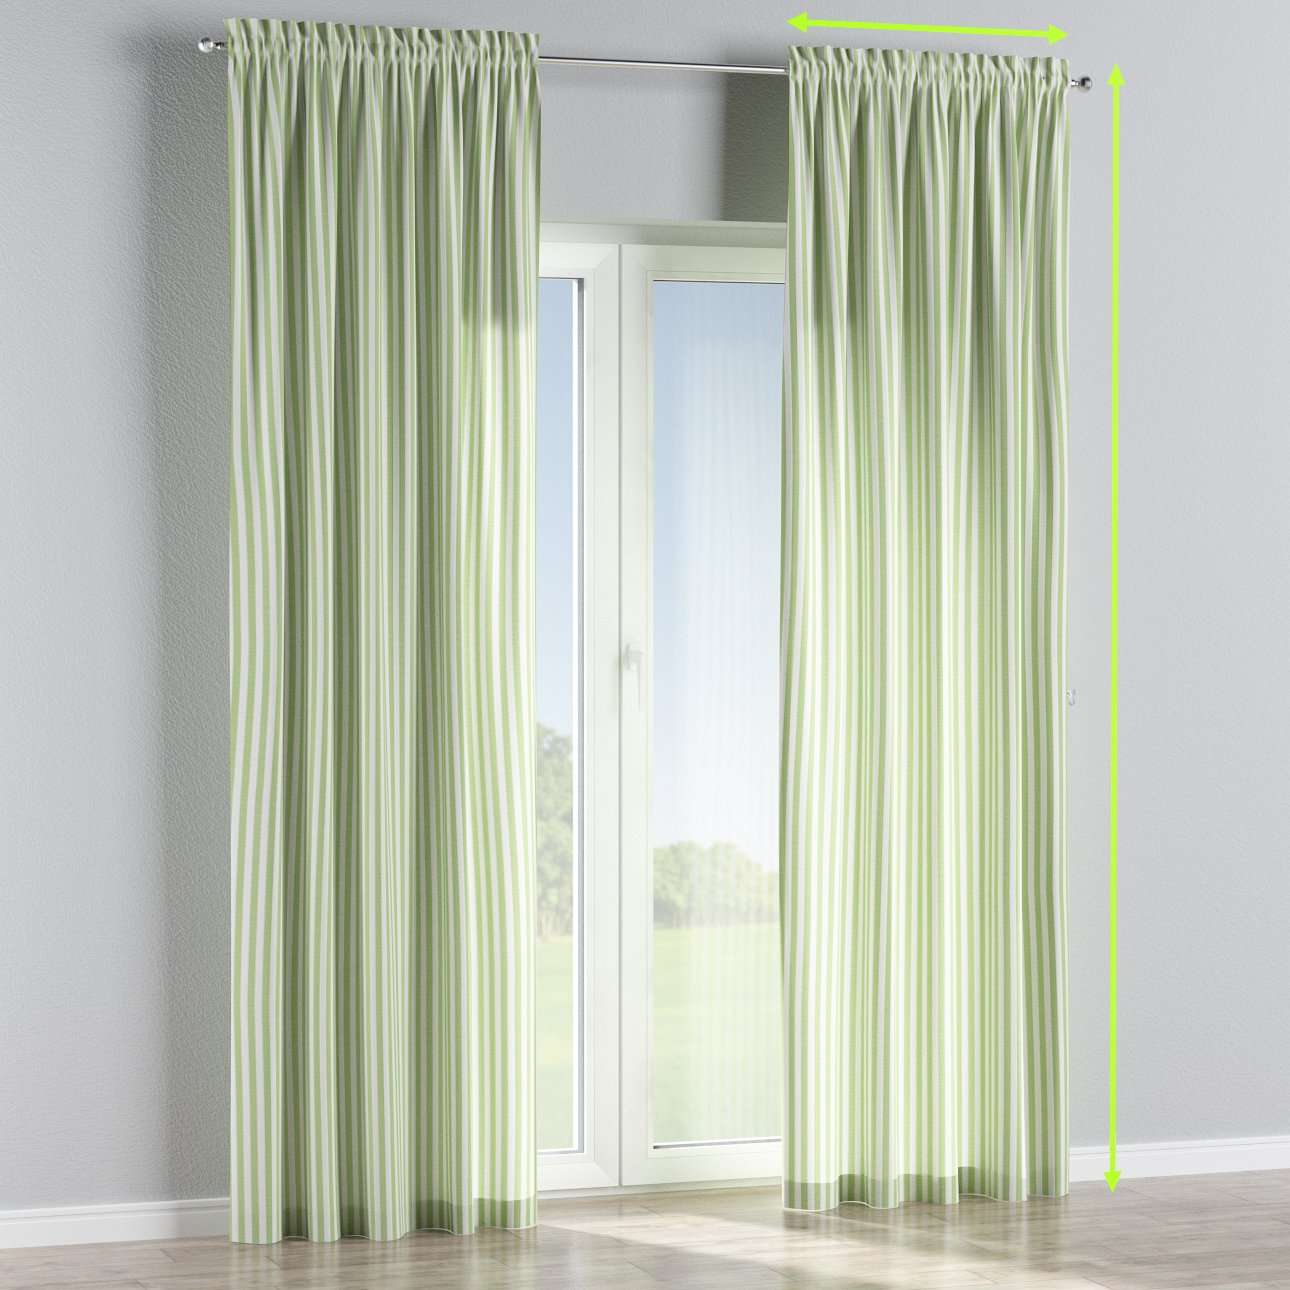 Slot and frill curtains in collection Quadro, fabric: 136-35